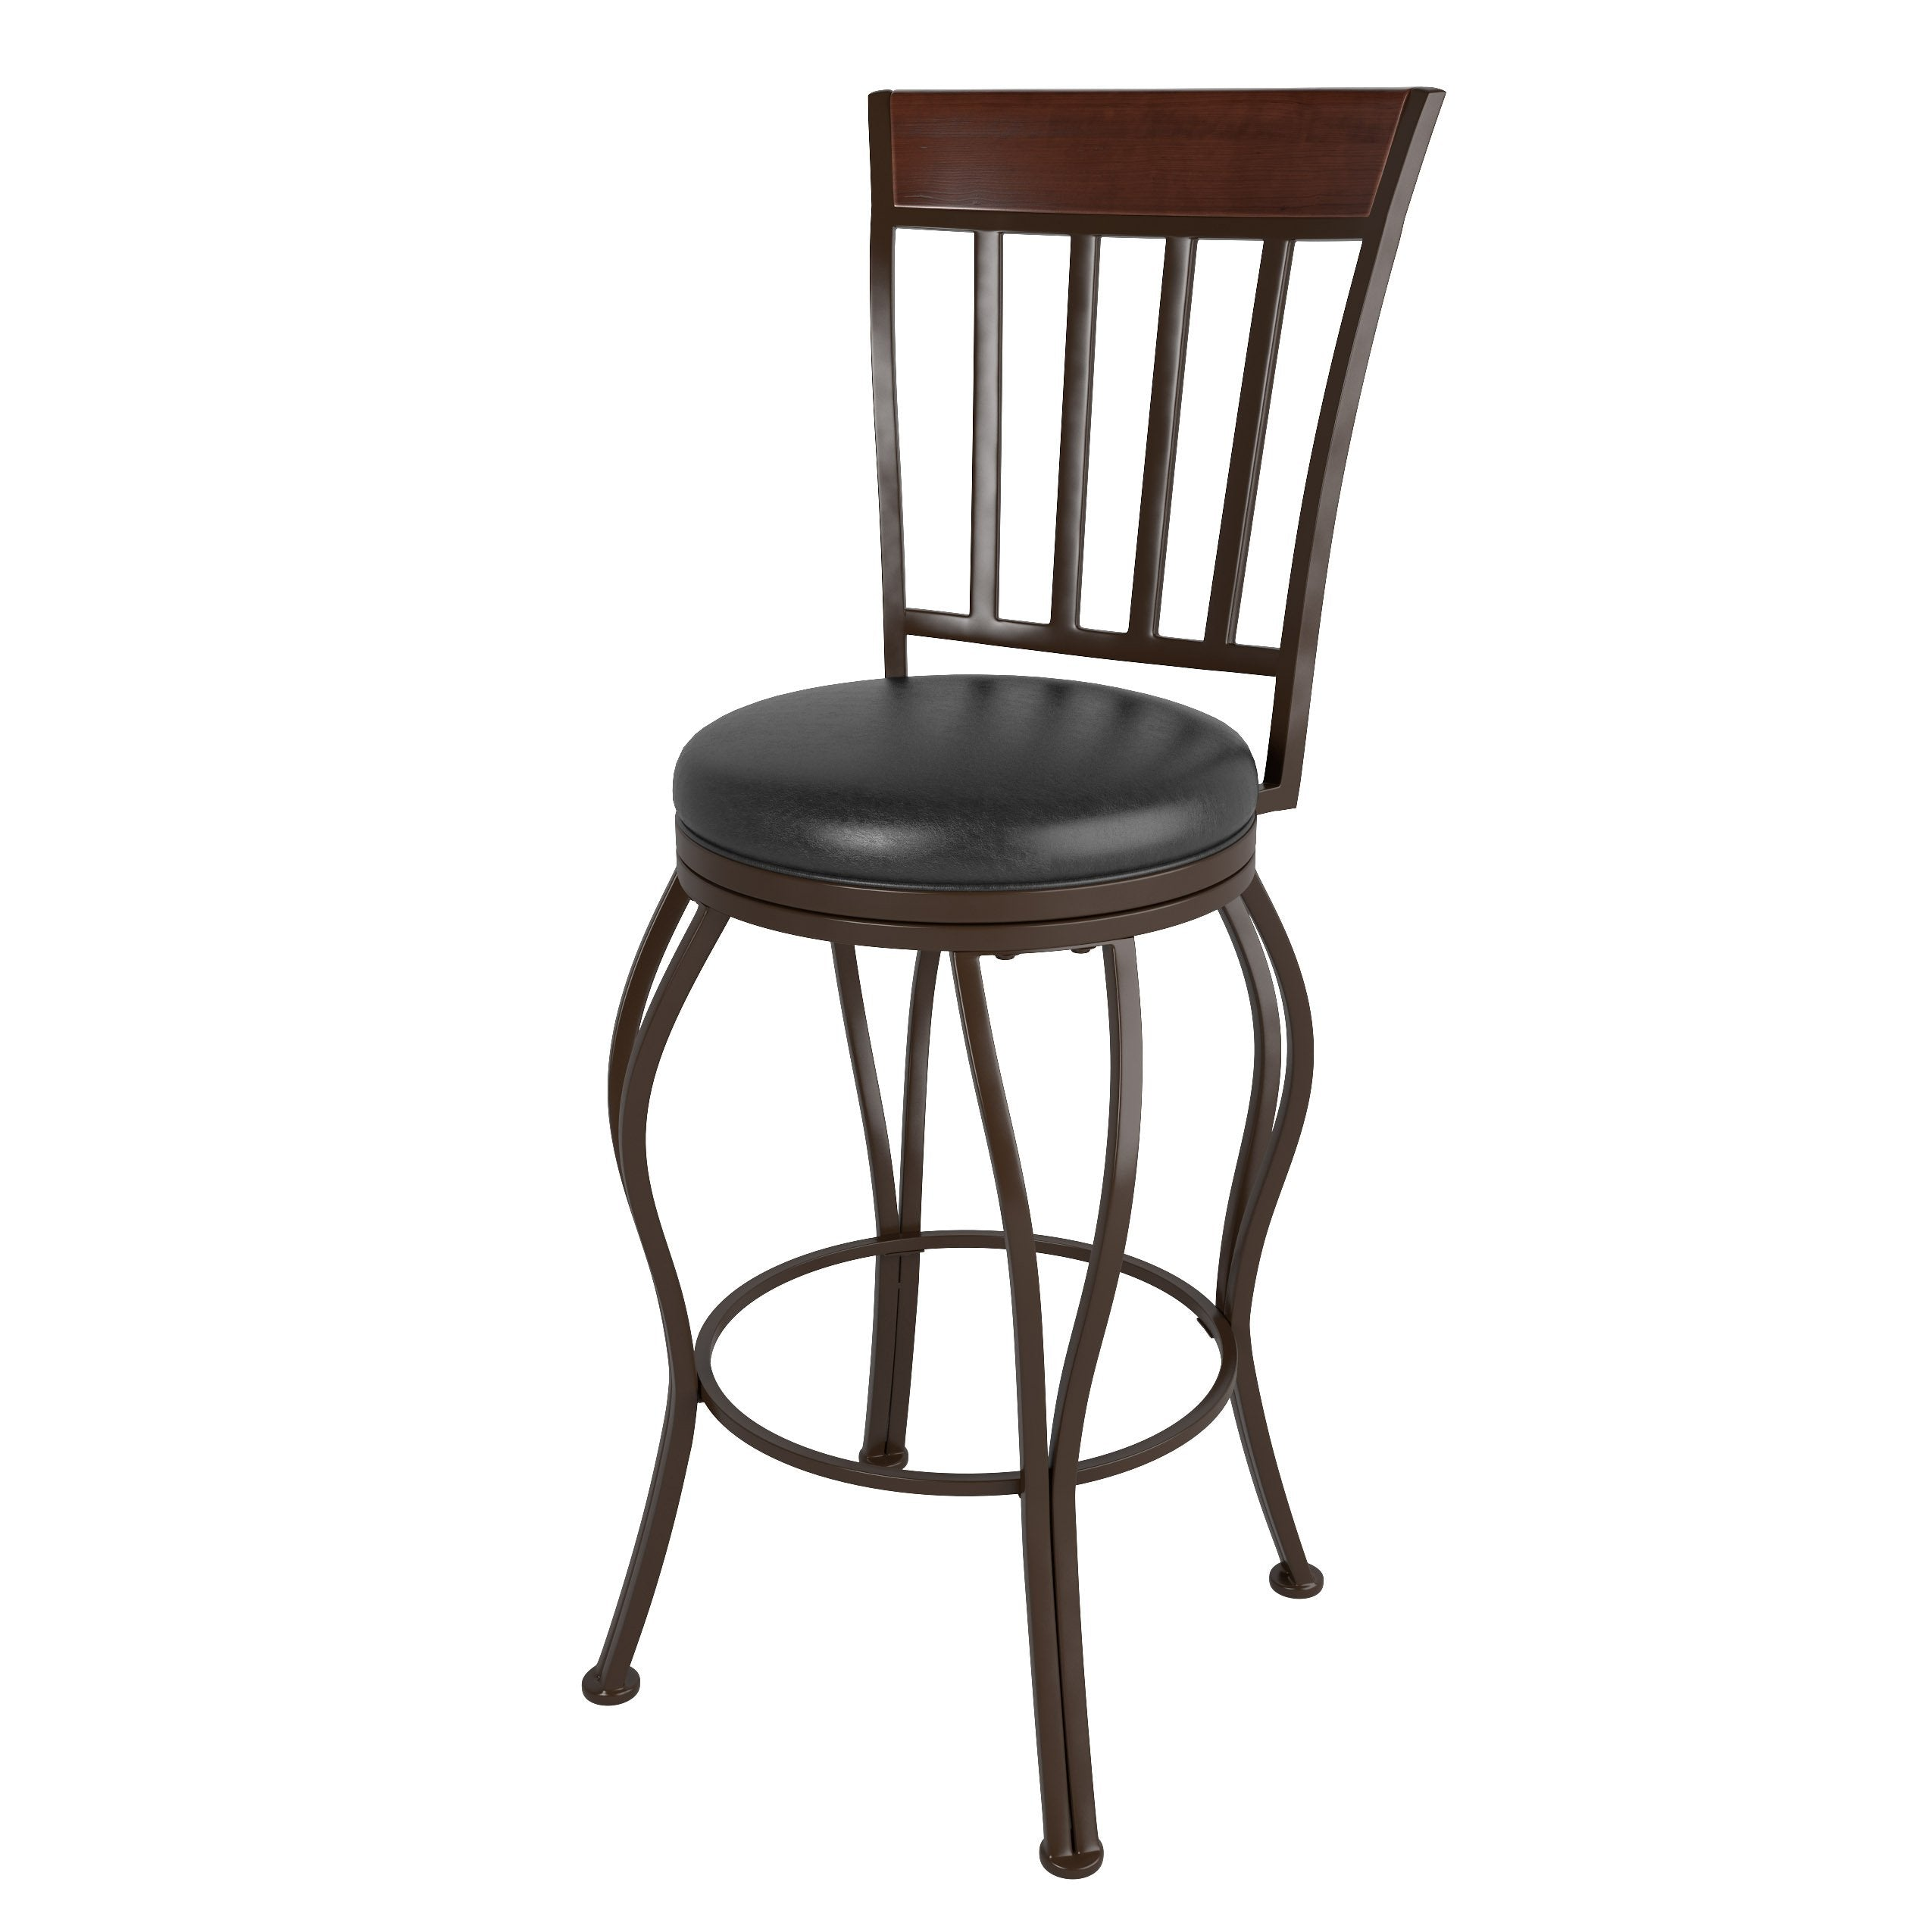 Brilliant Jericho Bar Stool Metal Bar Back Clearance Squirreltailoven Fun Painted Chair Ideas Images Squirreltailovenorg